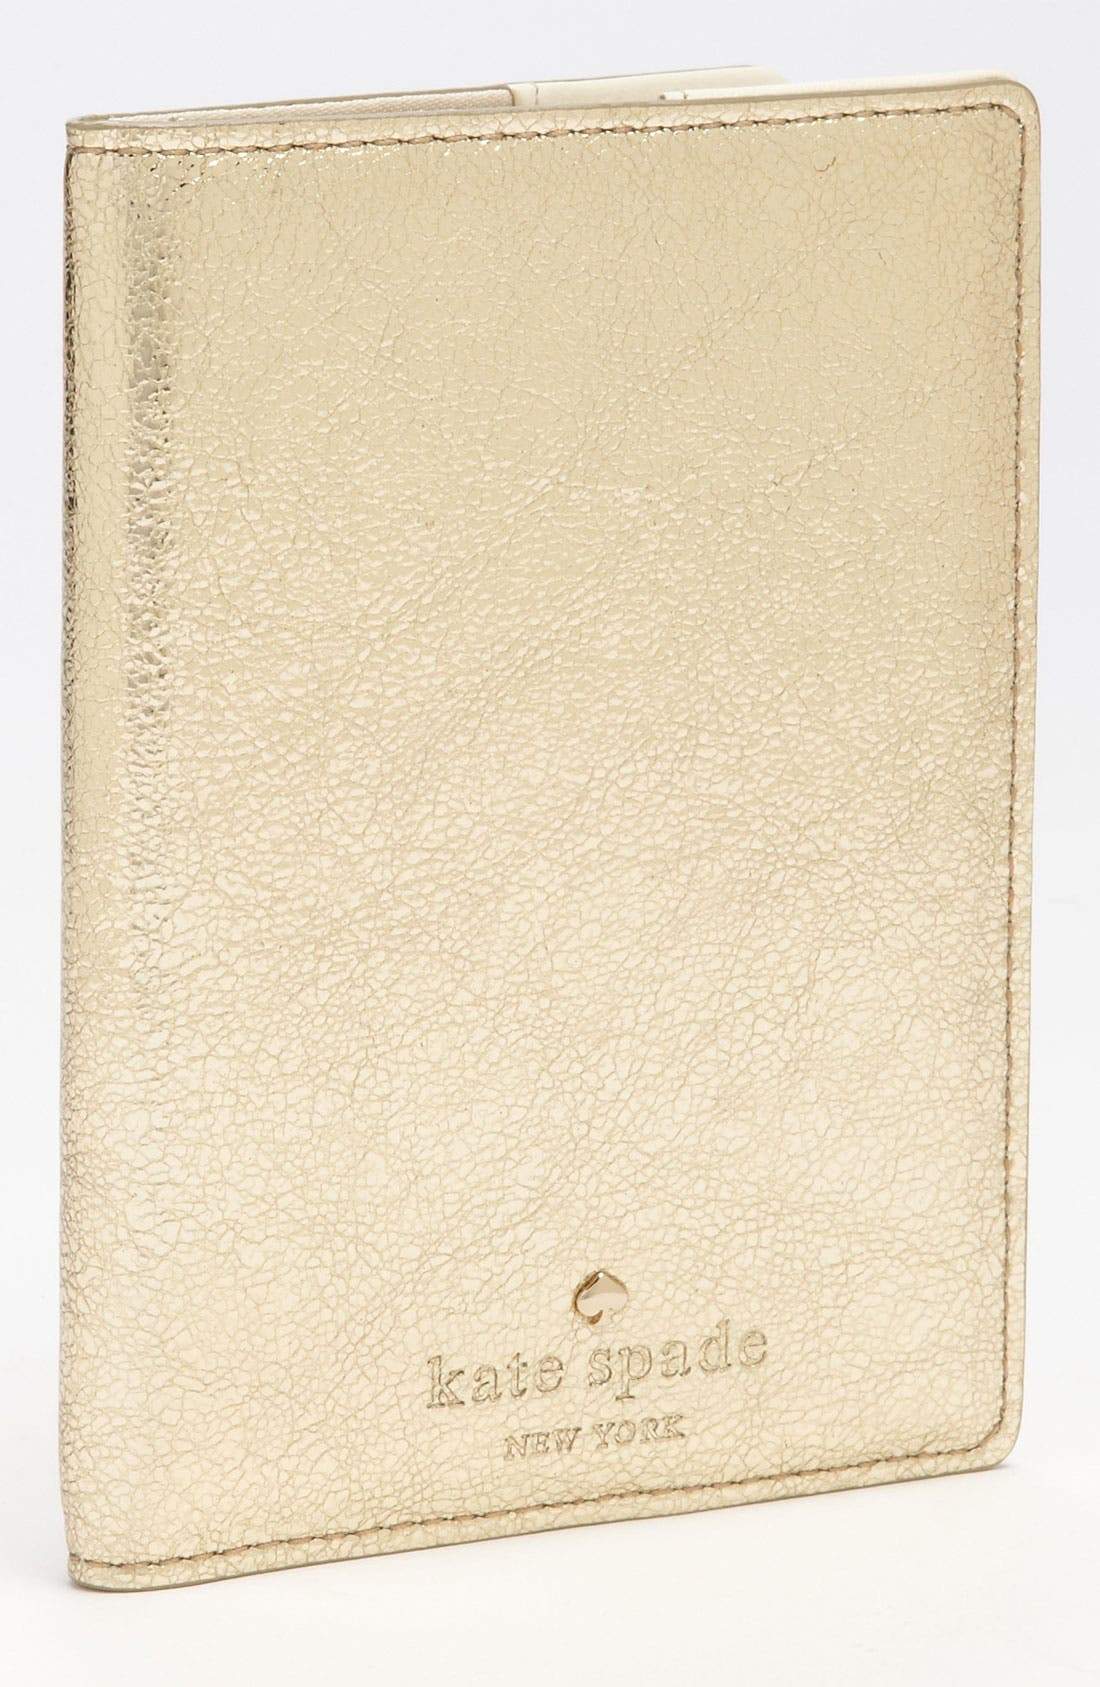 Alternate Image 1 Selected - kate spade new york 'harrison street' metallic passport case